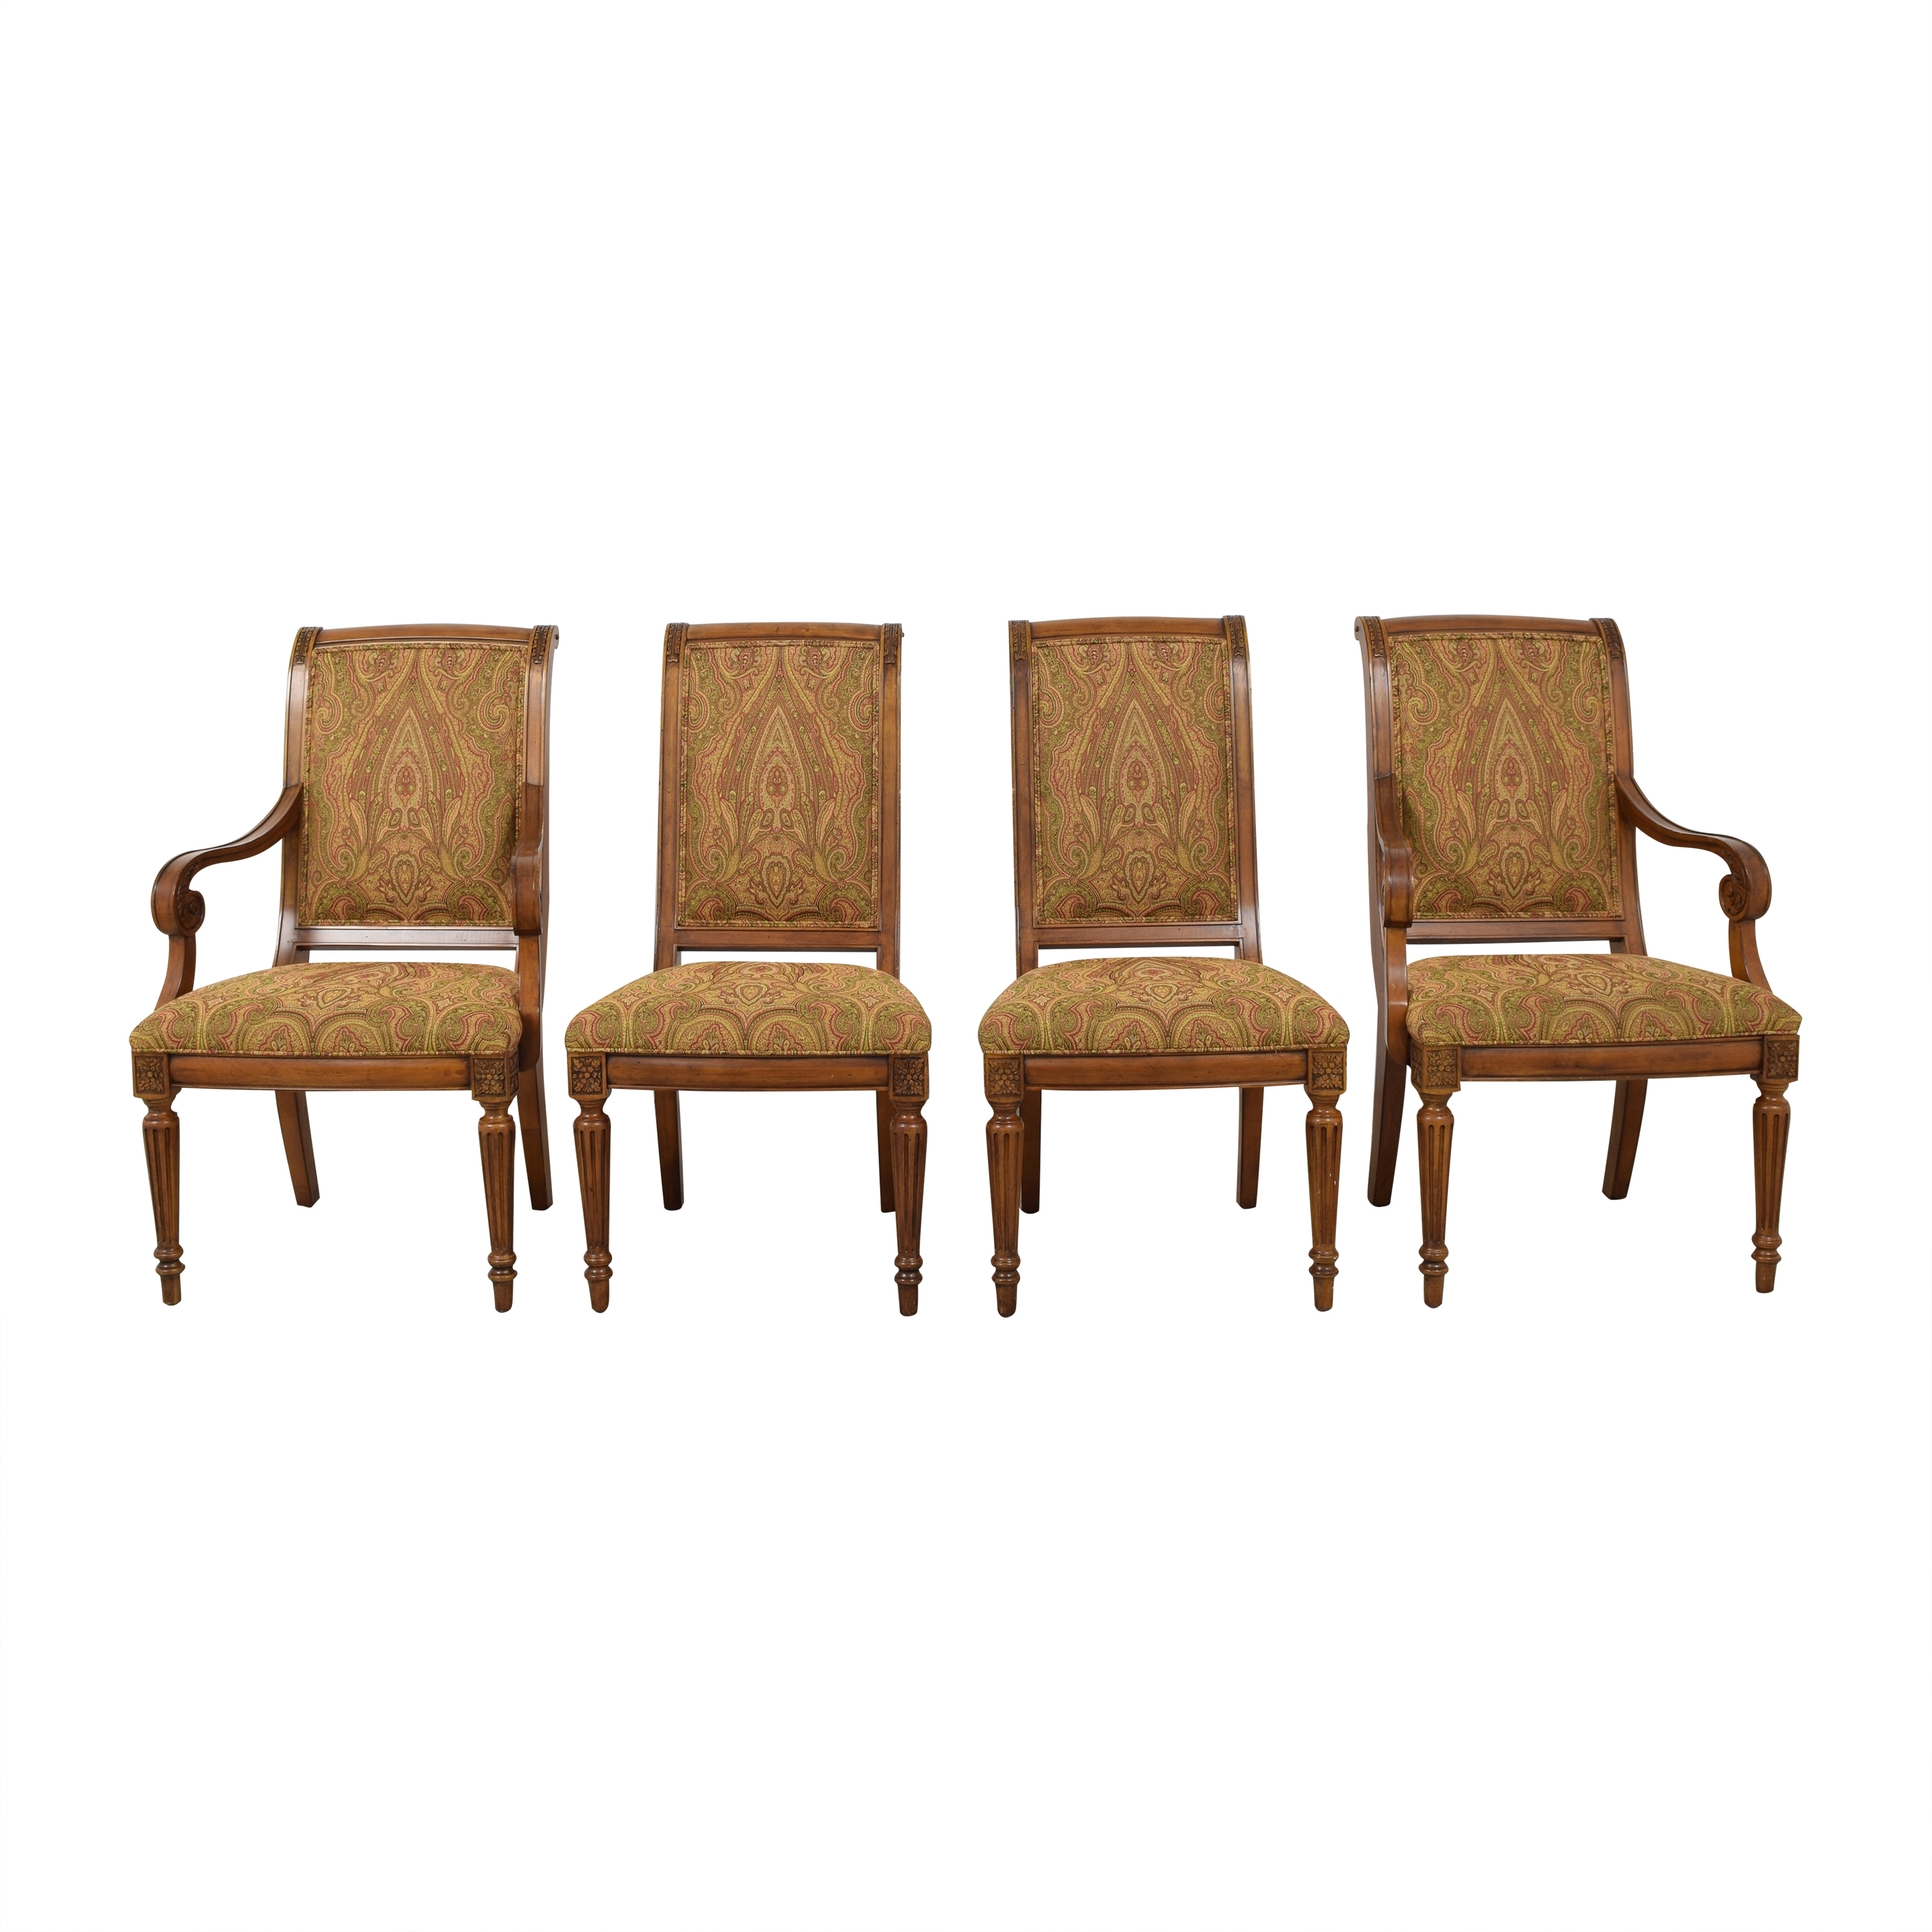 Ethan Allen Ethan Allen Adison Dining Chairs nyc